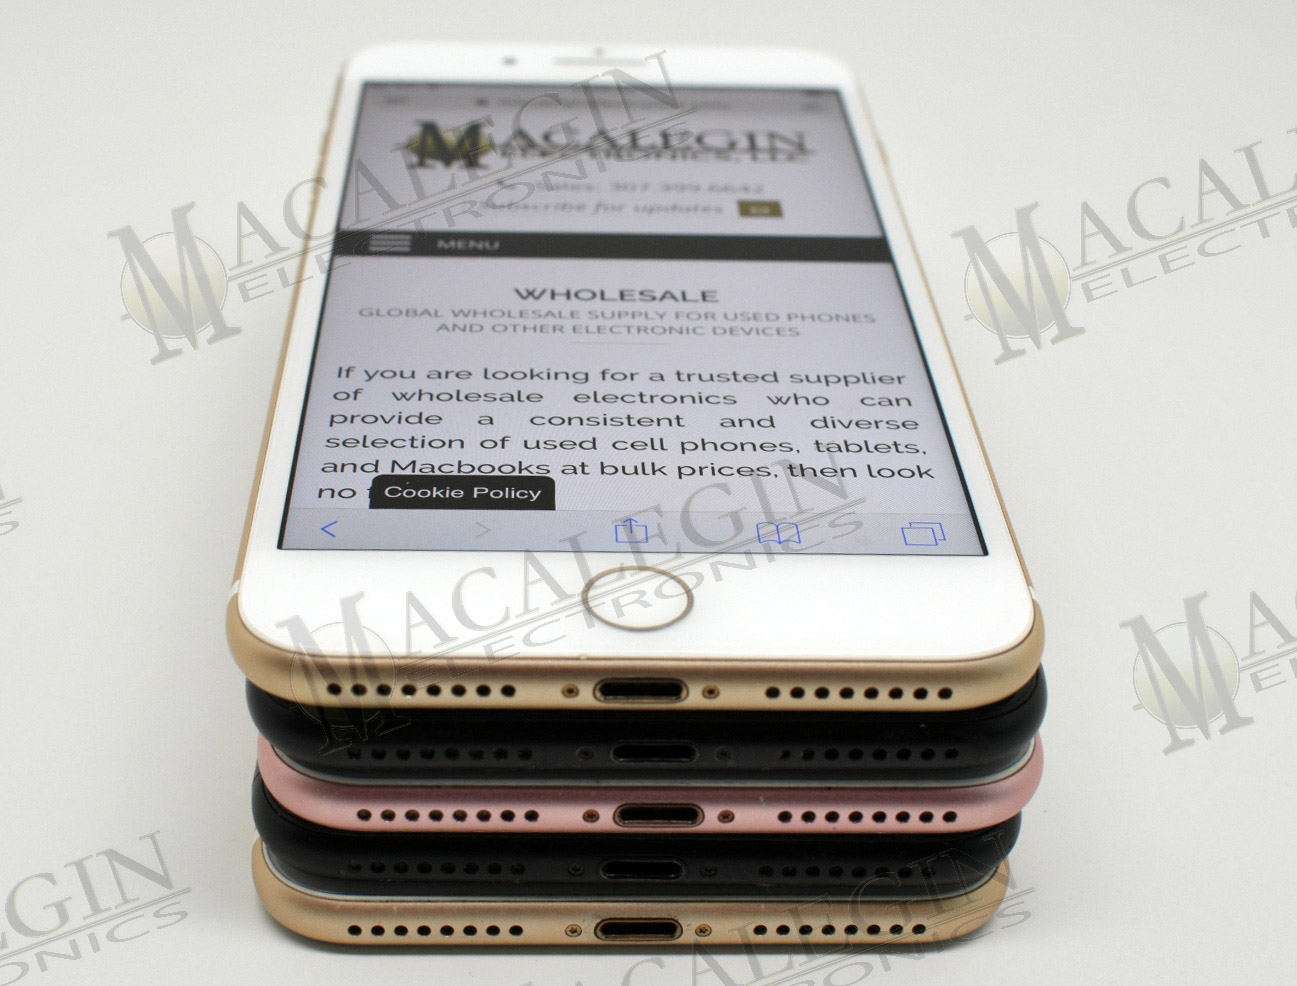 Used APPLE A1784 IPHONE 7 PLUS 128GB UNLOCKED in PGL condition for sale from Macalegin Electronics at $290 a piece.